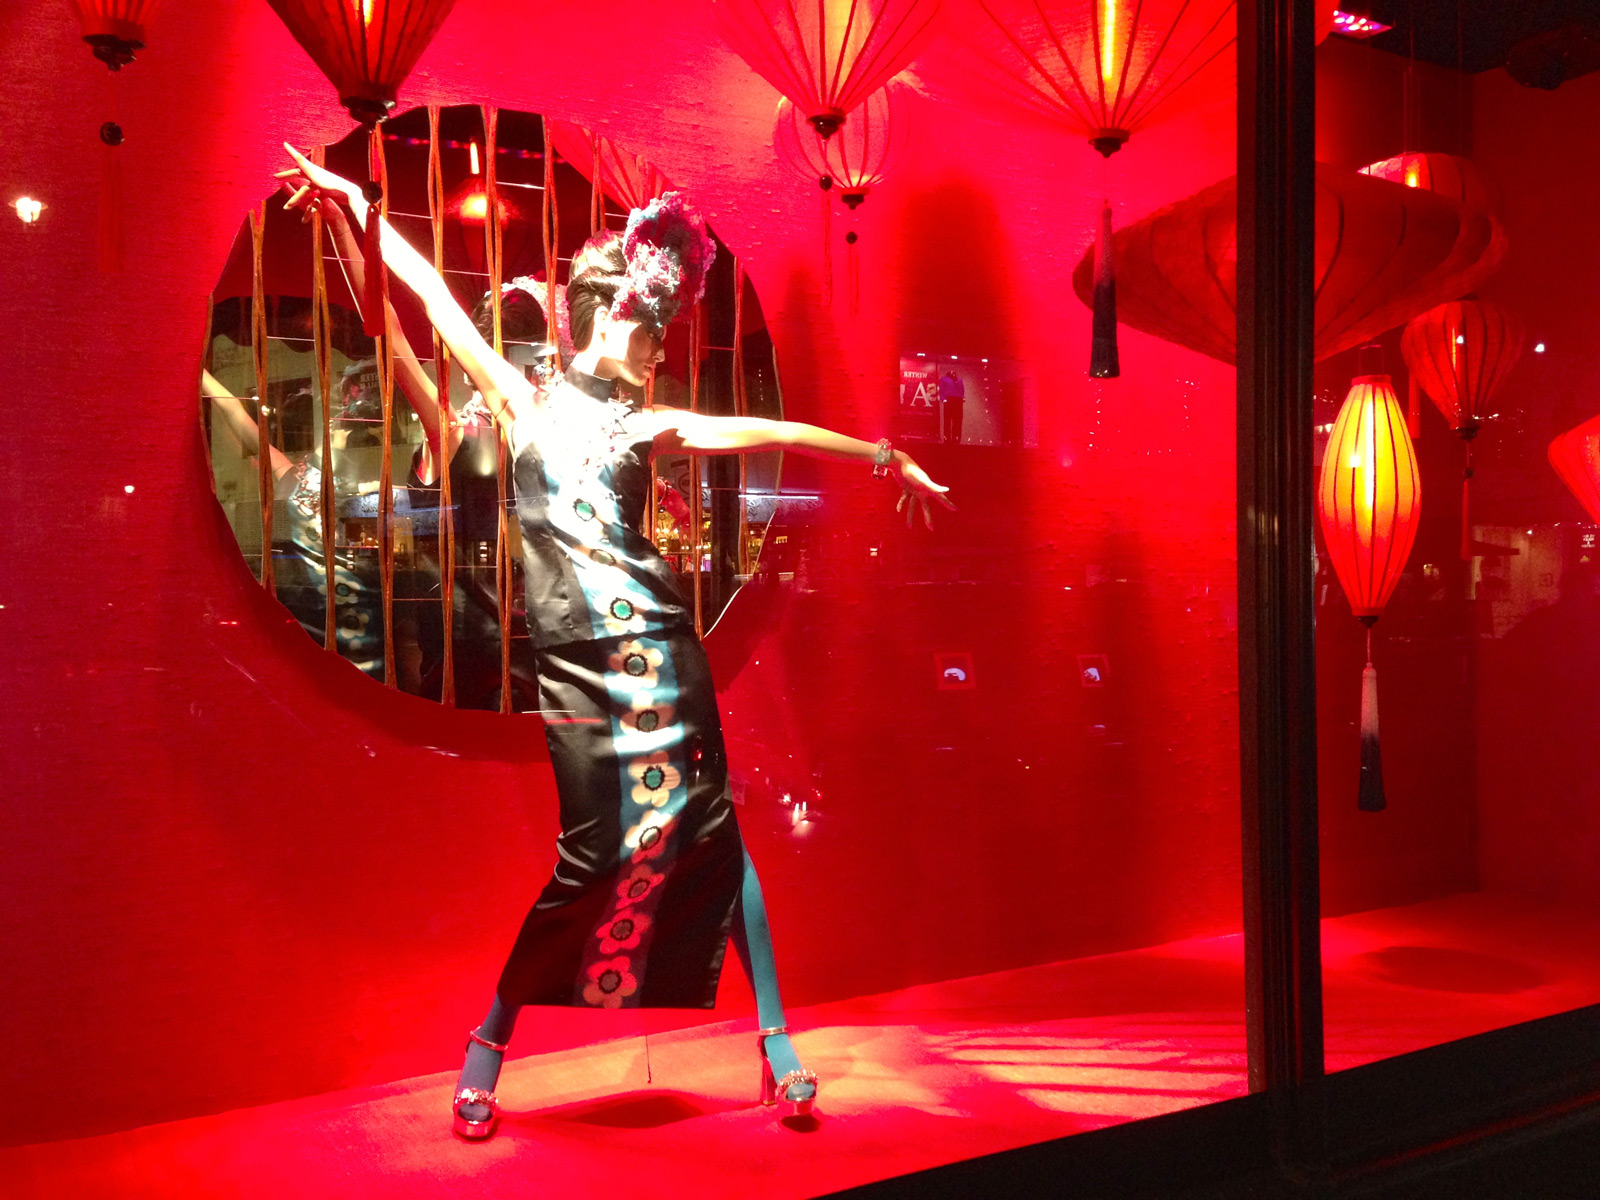 Chinese Lunar New Year's Eve is something to celebrate for, through intense red decoration, like in this window display.